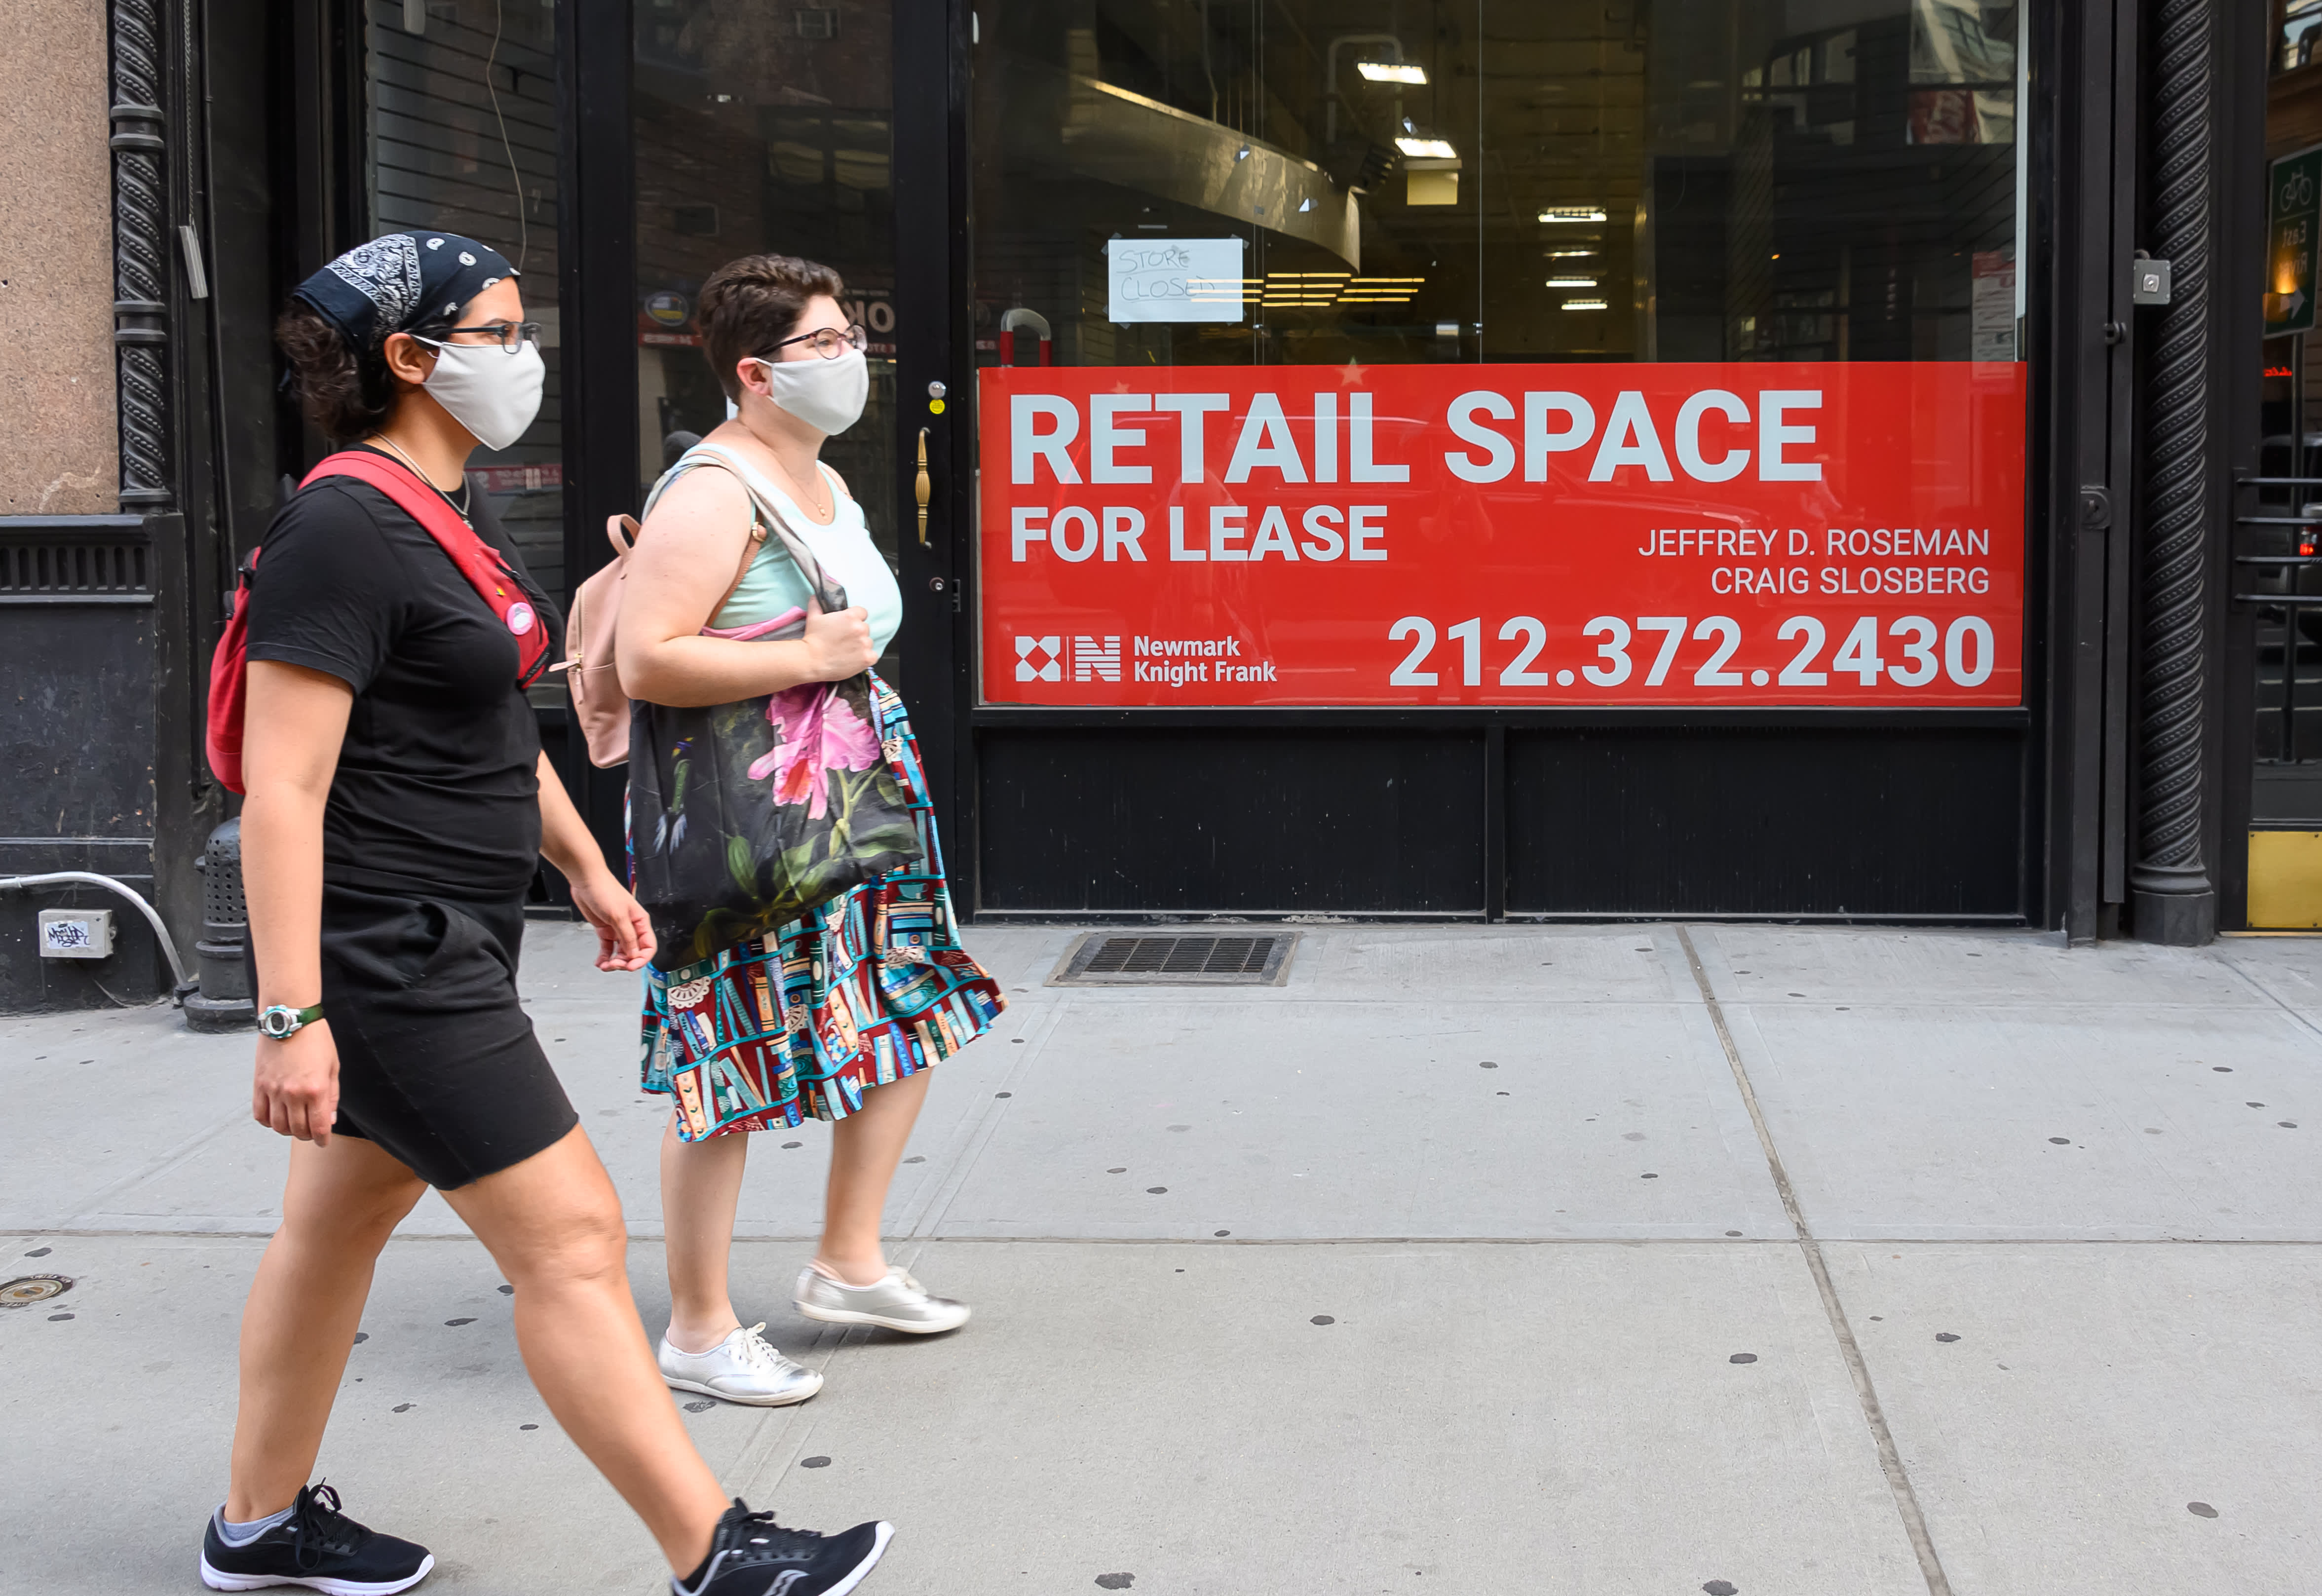 New York City may turn vacant retail space into Covid testing sites, says real estate mogul thumbnail